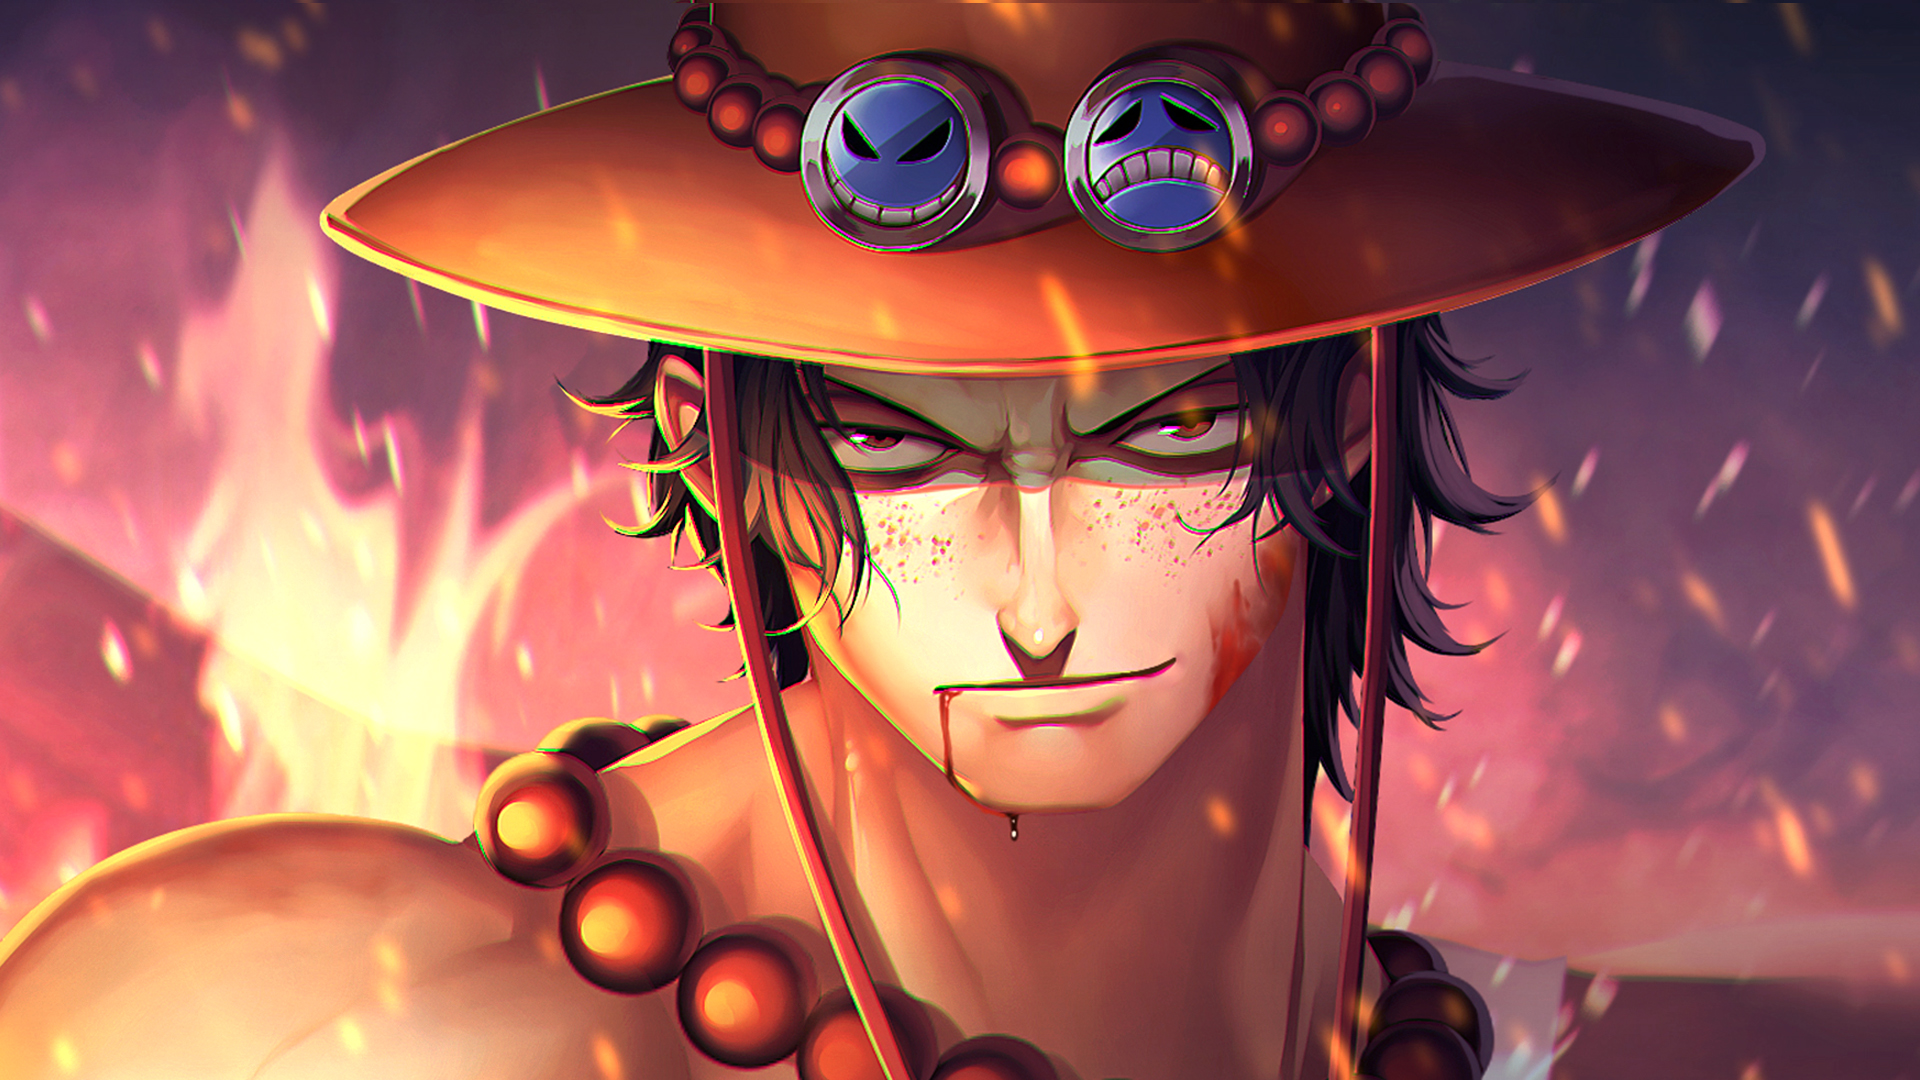 Portgas D Ace HD Anime 4k Wallpapers Images Backgrounds Photos